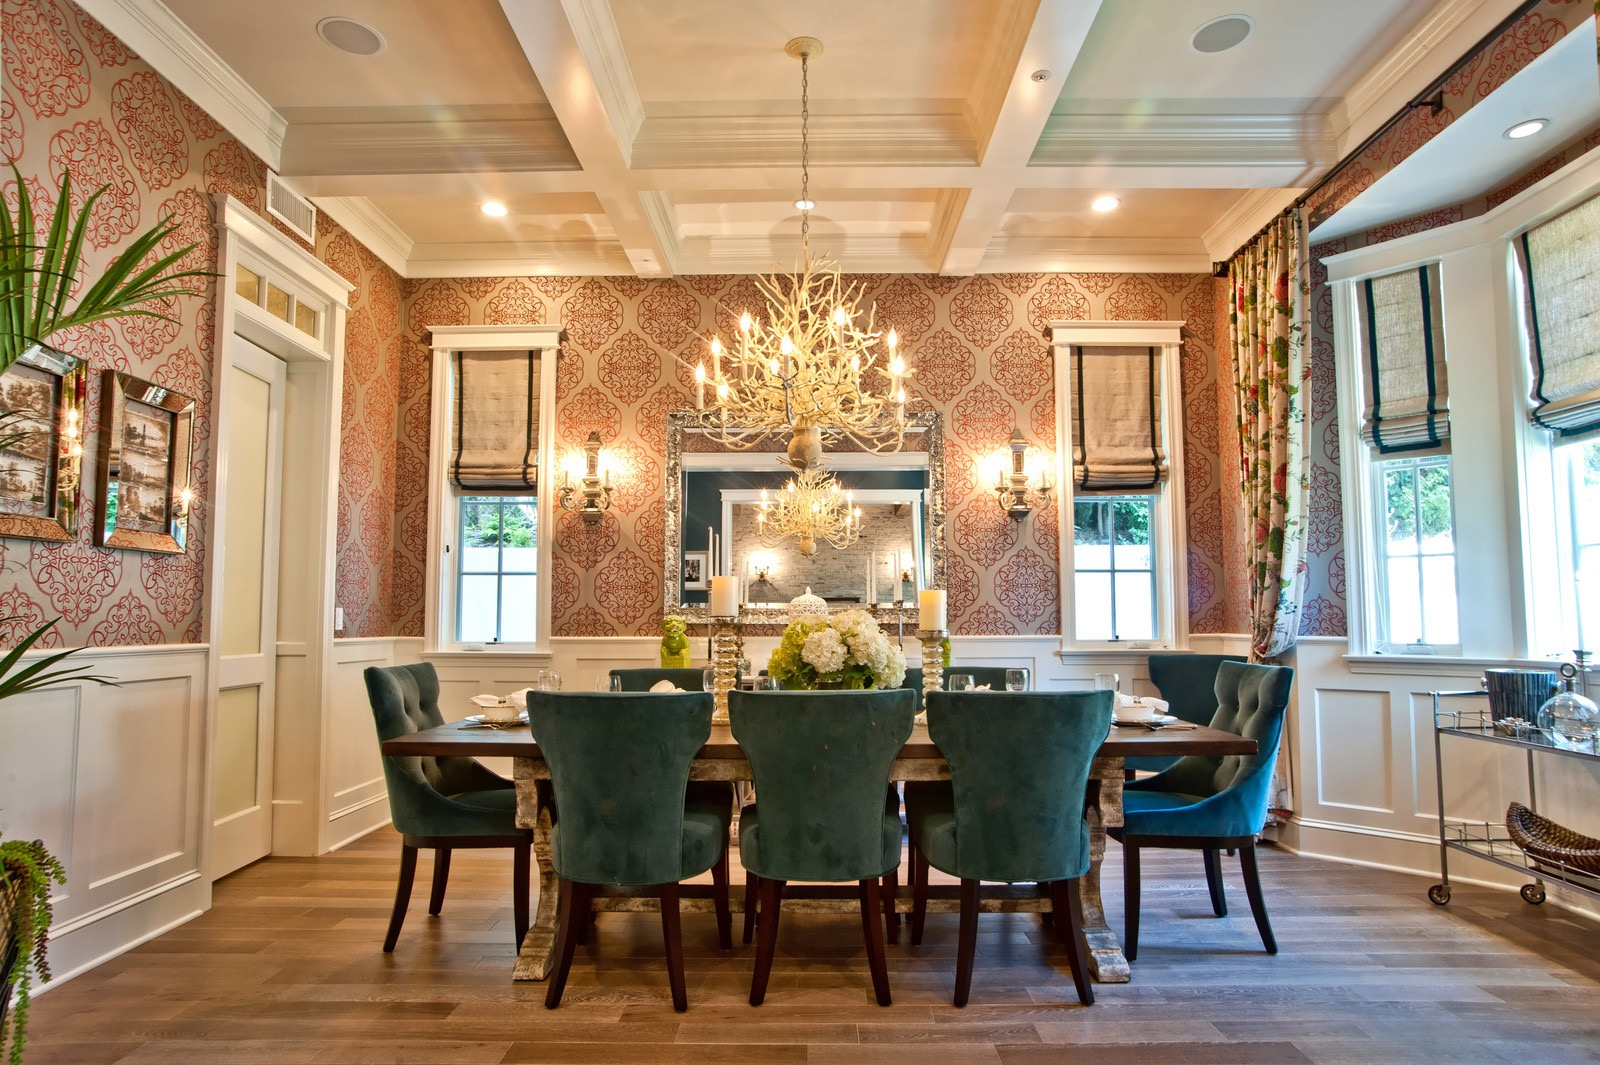 30 Best Formal Dining Room Design And Decor Ideas 828